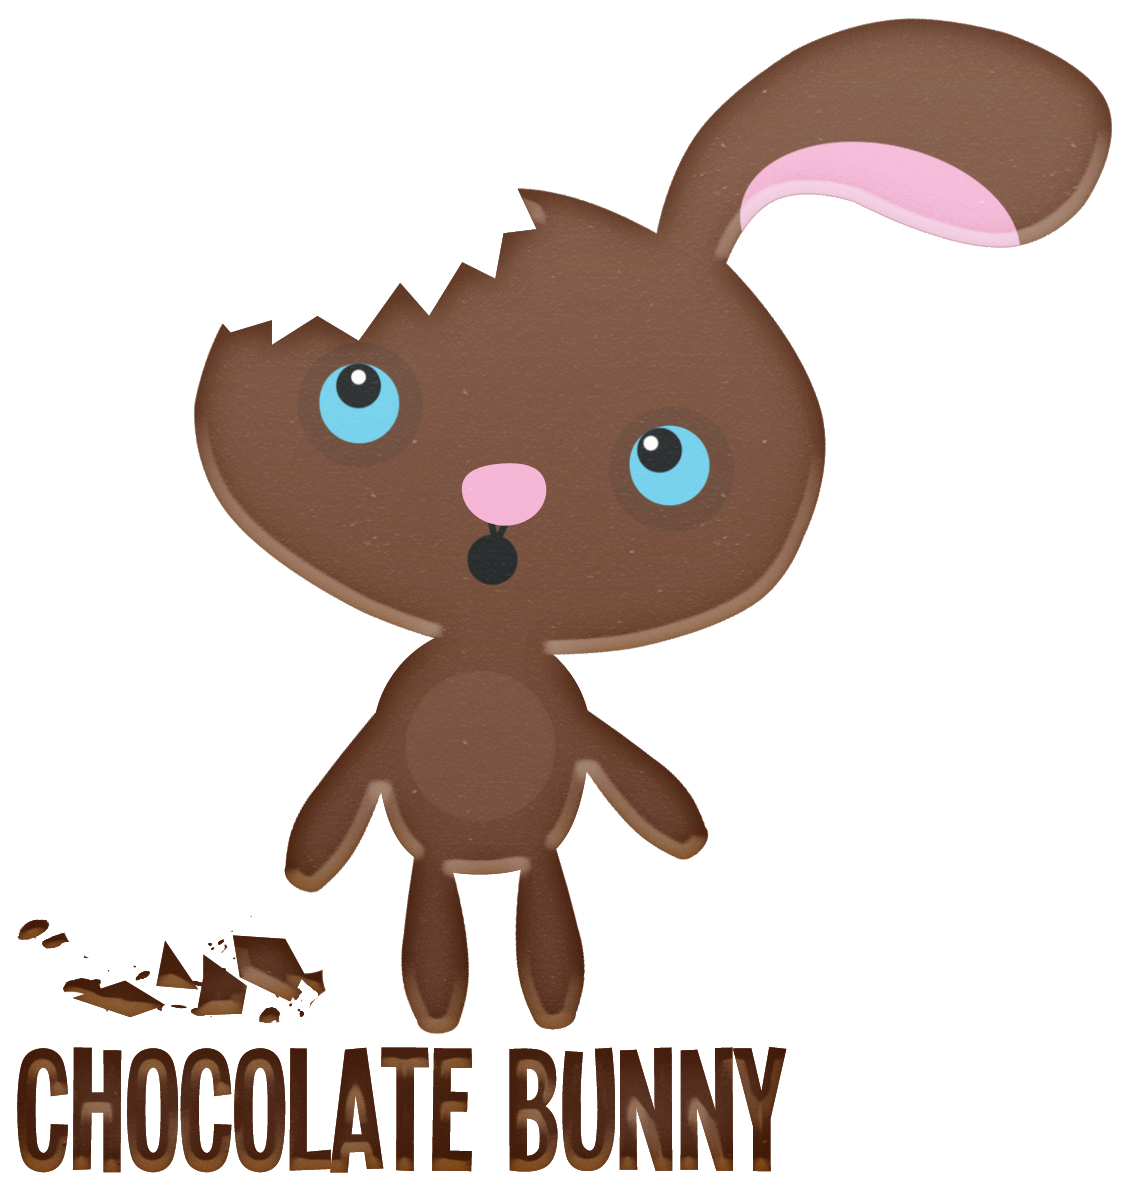 chocolate easter bunny ears missing - Google Search | Bunny ...